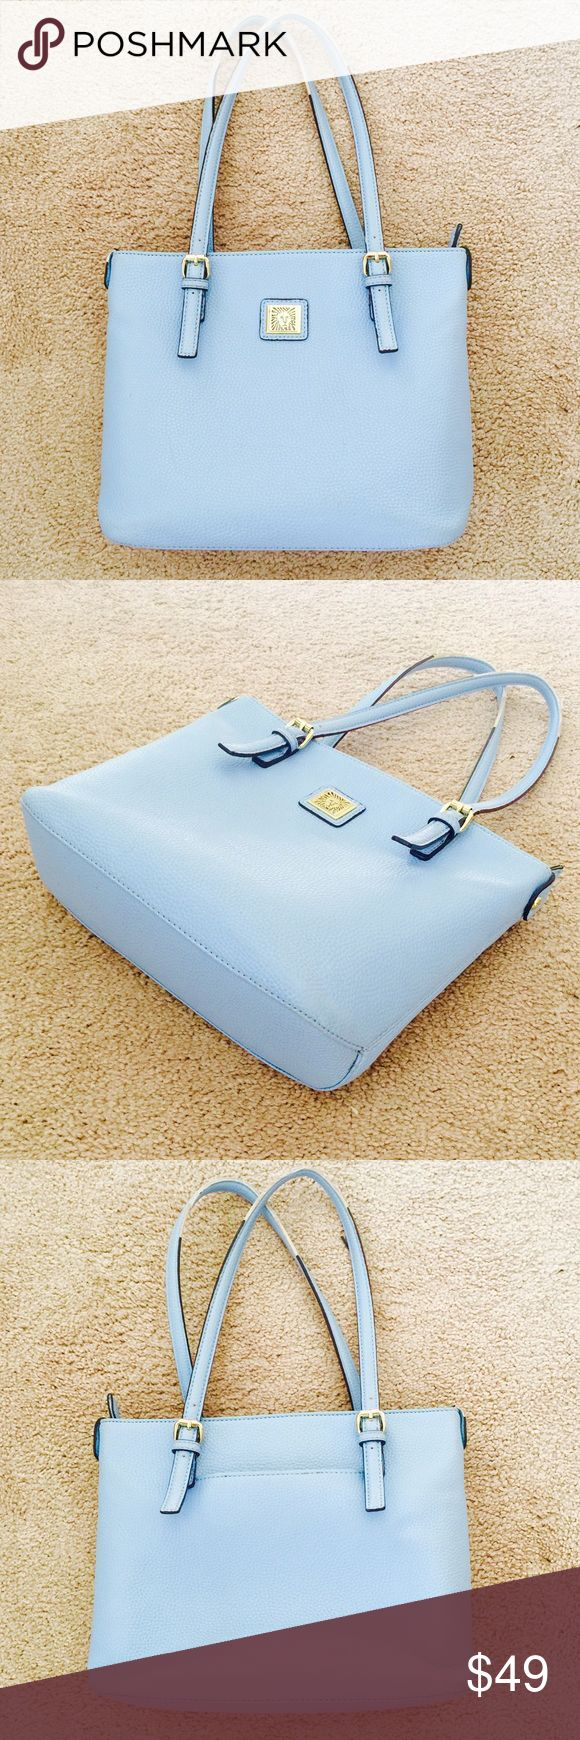 ❗Nordstrom's Anne Klein Sky Blue Tote ❗️Anne Klein from Nordstrom's Sky Blue Tote. Sleek & perfect for spring! Great condition some wear to top handles as shown. Make an offer! I consider all reasonable offers on items & give great bundle deals! Winter cleanout sale ;-) Nordstrom Bags